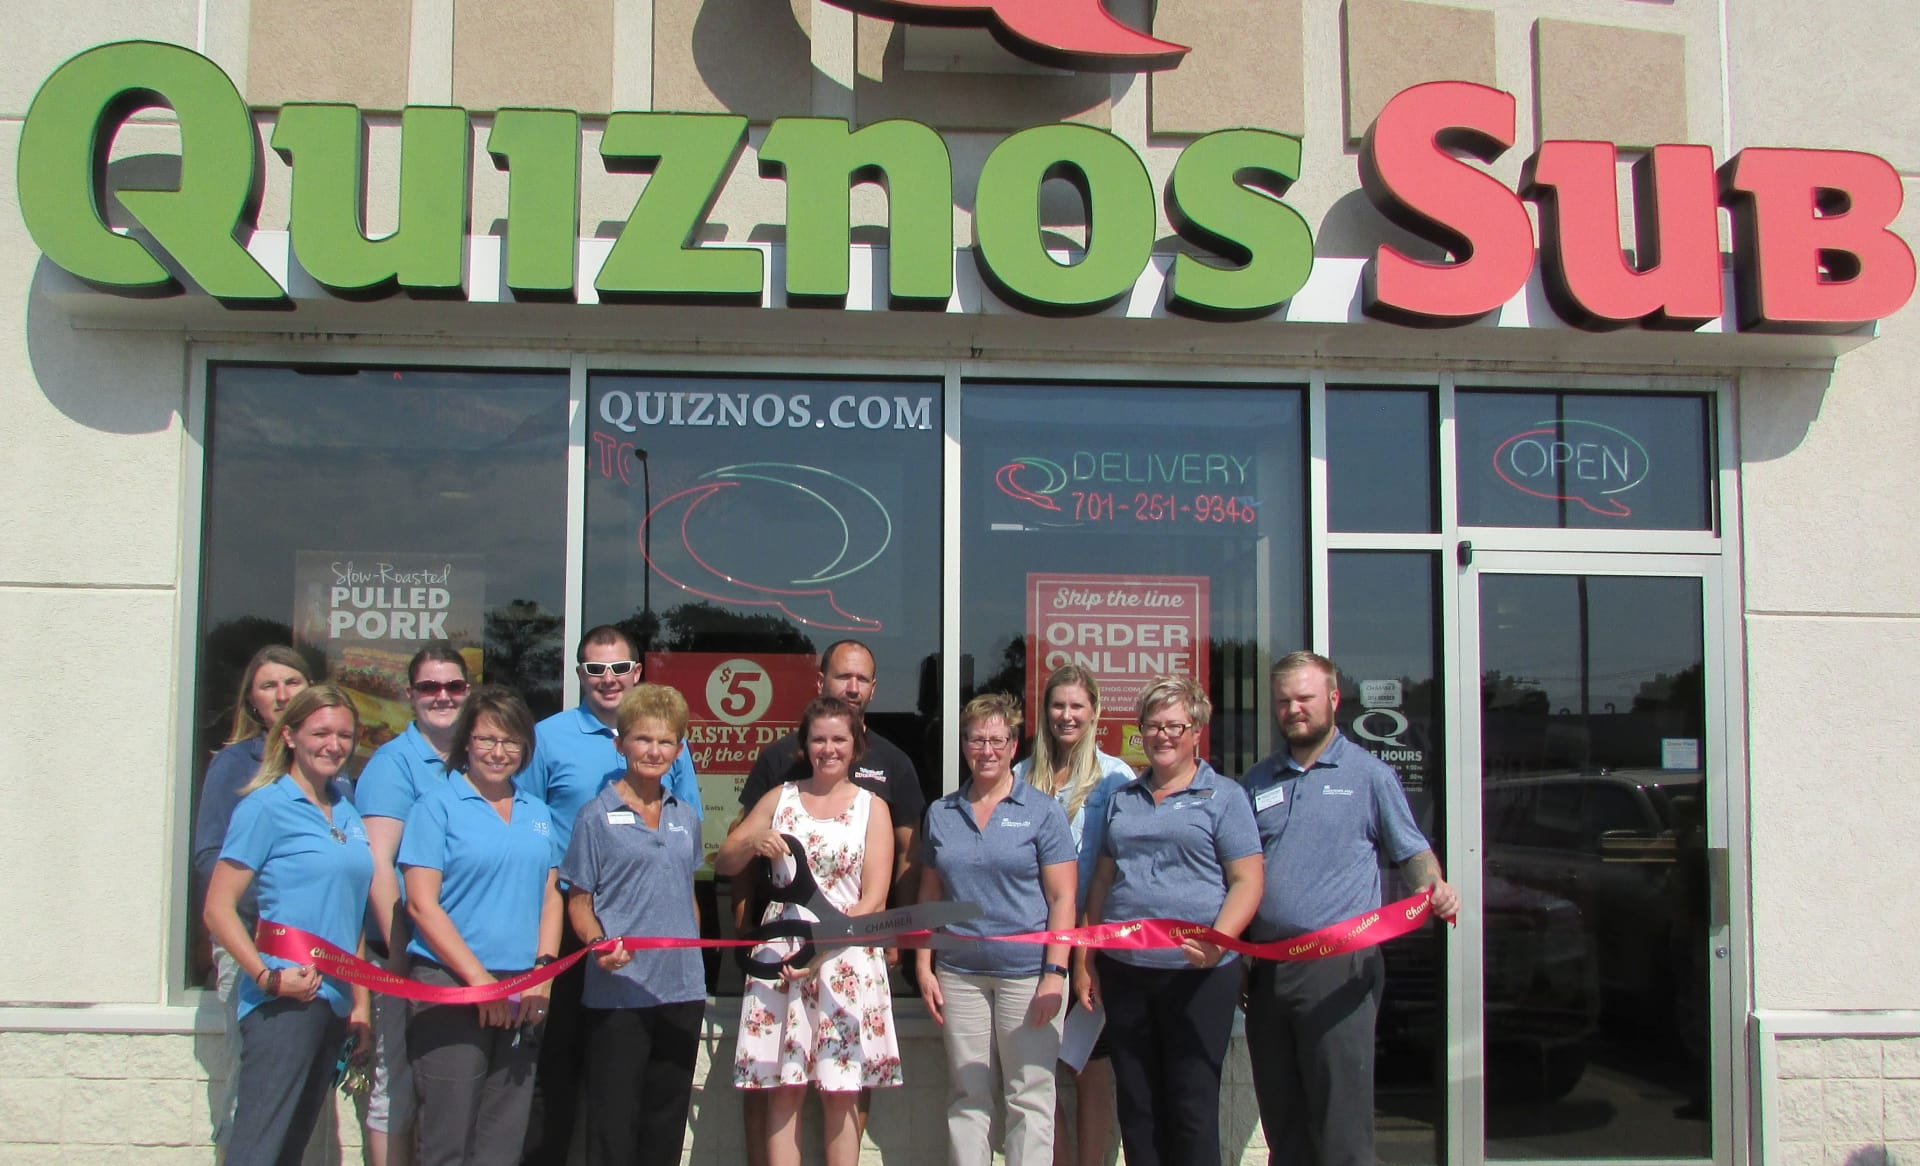 Quiznos-group-picture(1)-w1920.jpg